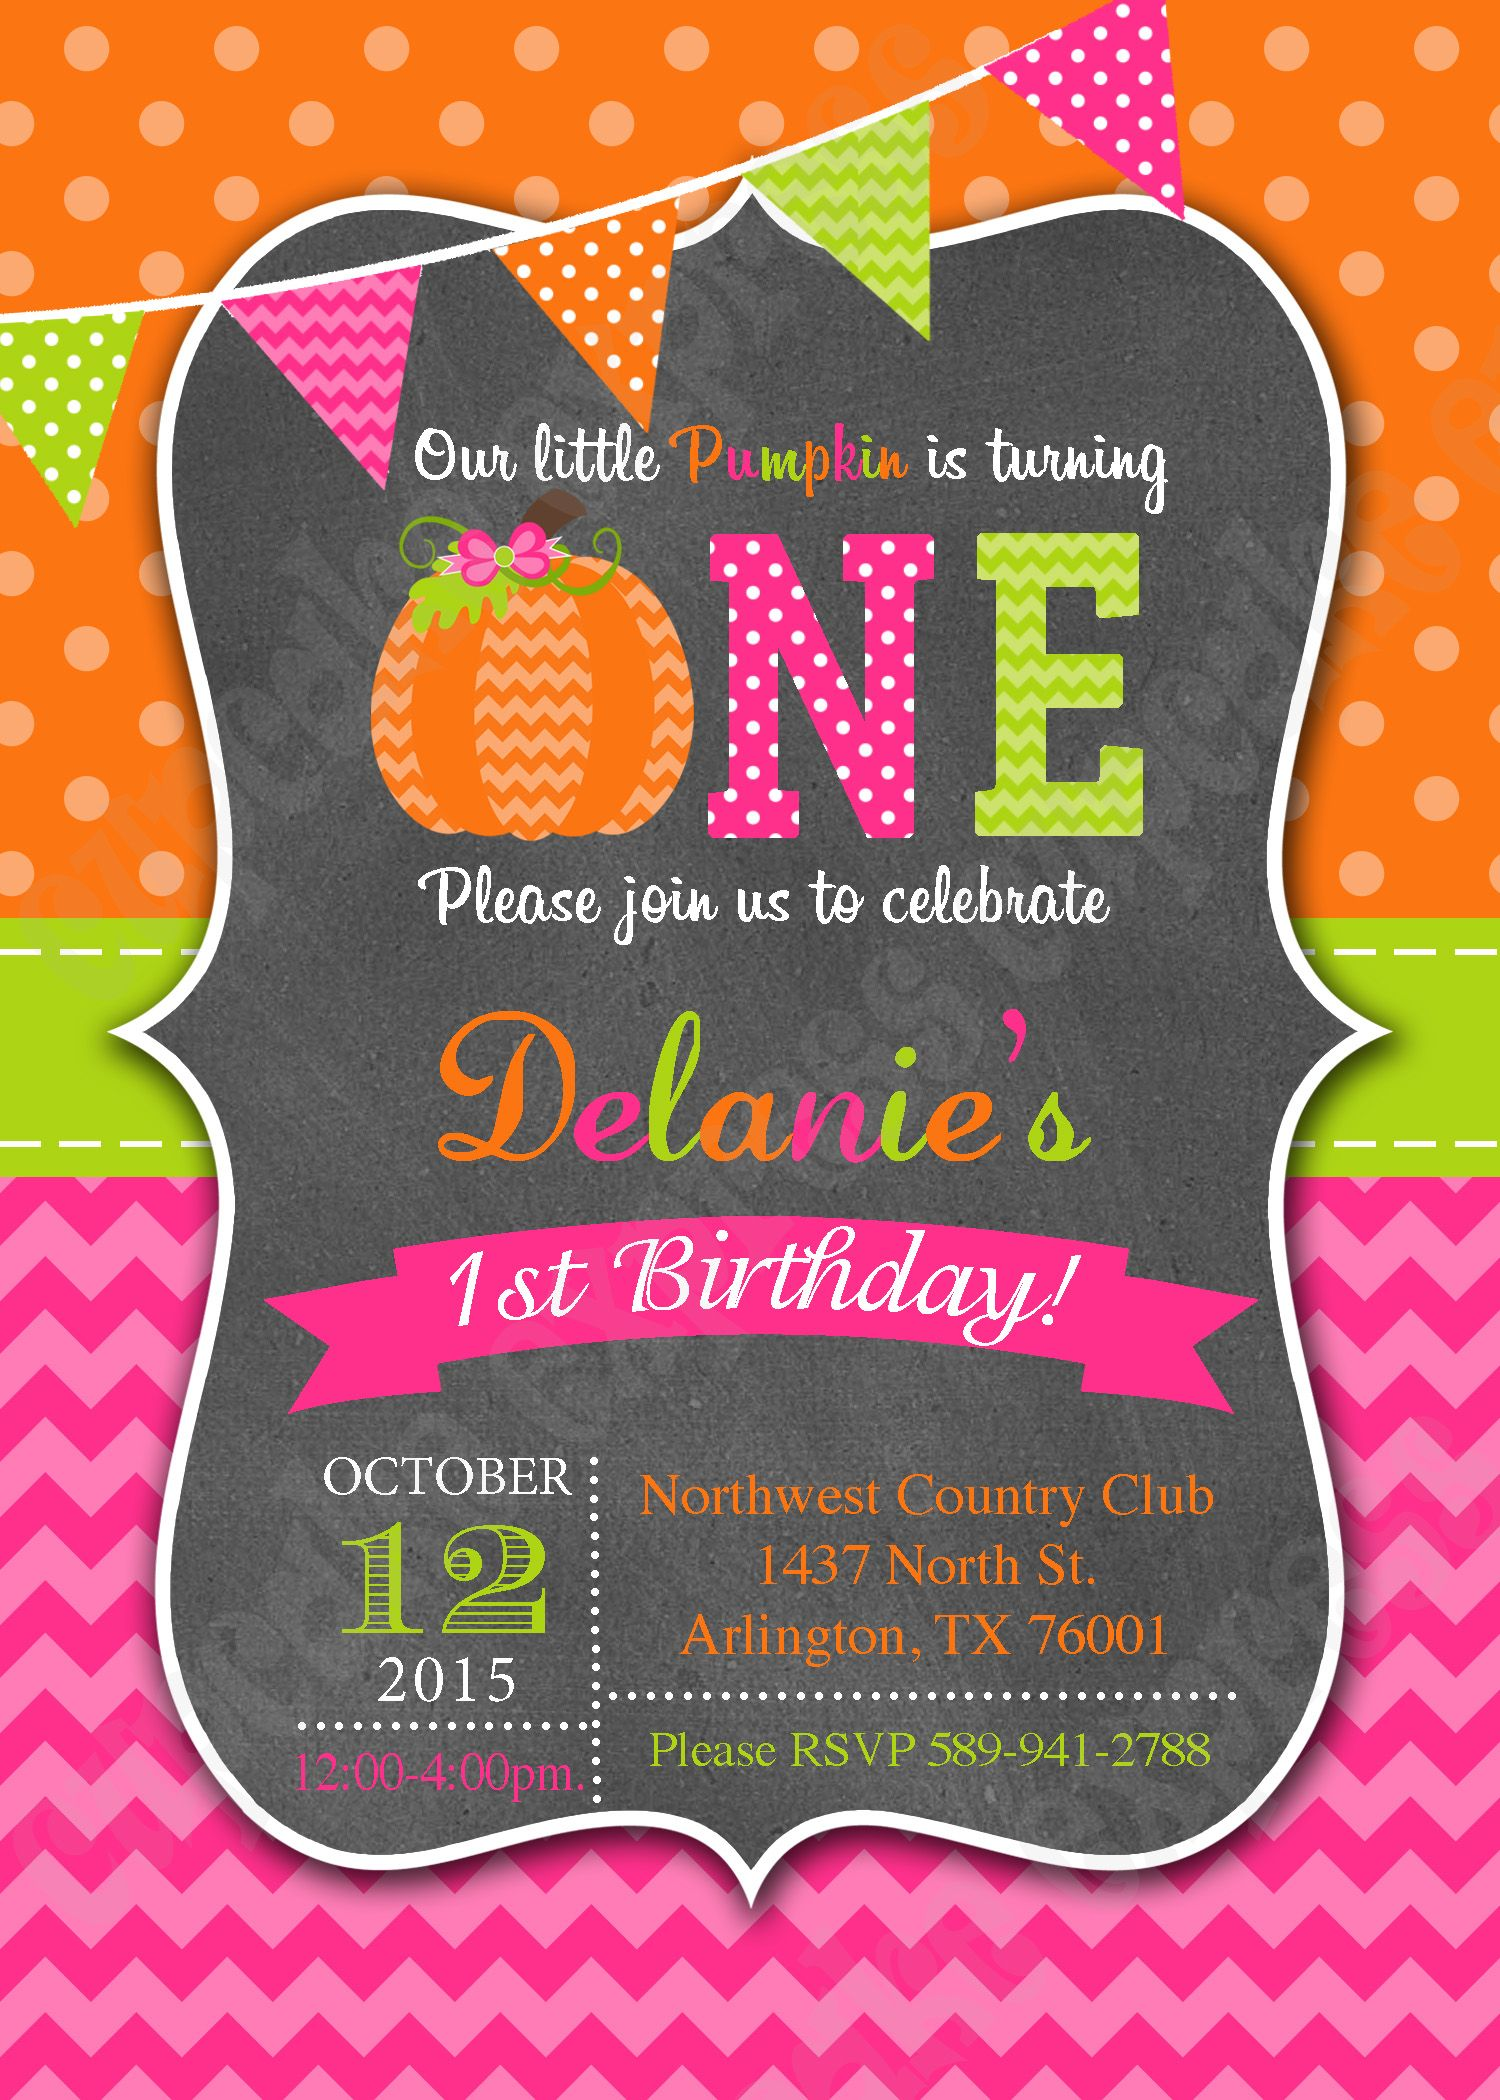 HALLOWEEN birthday PARTY INVITATION costume party | Halloween ...